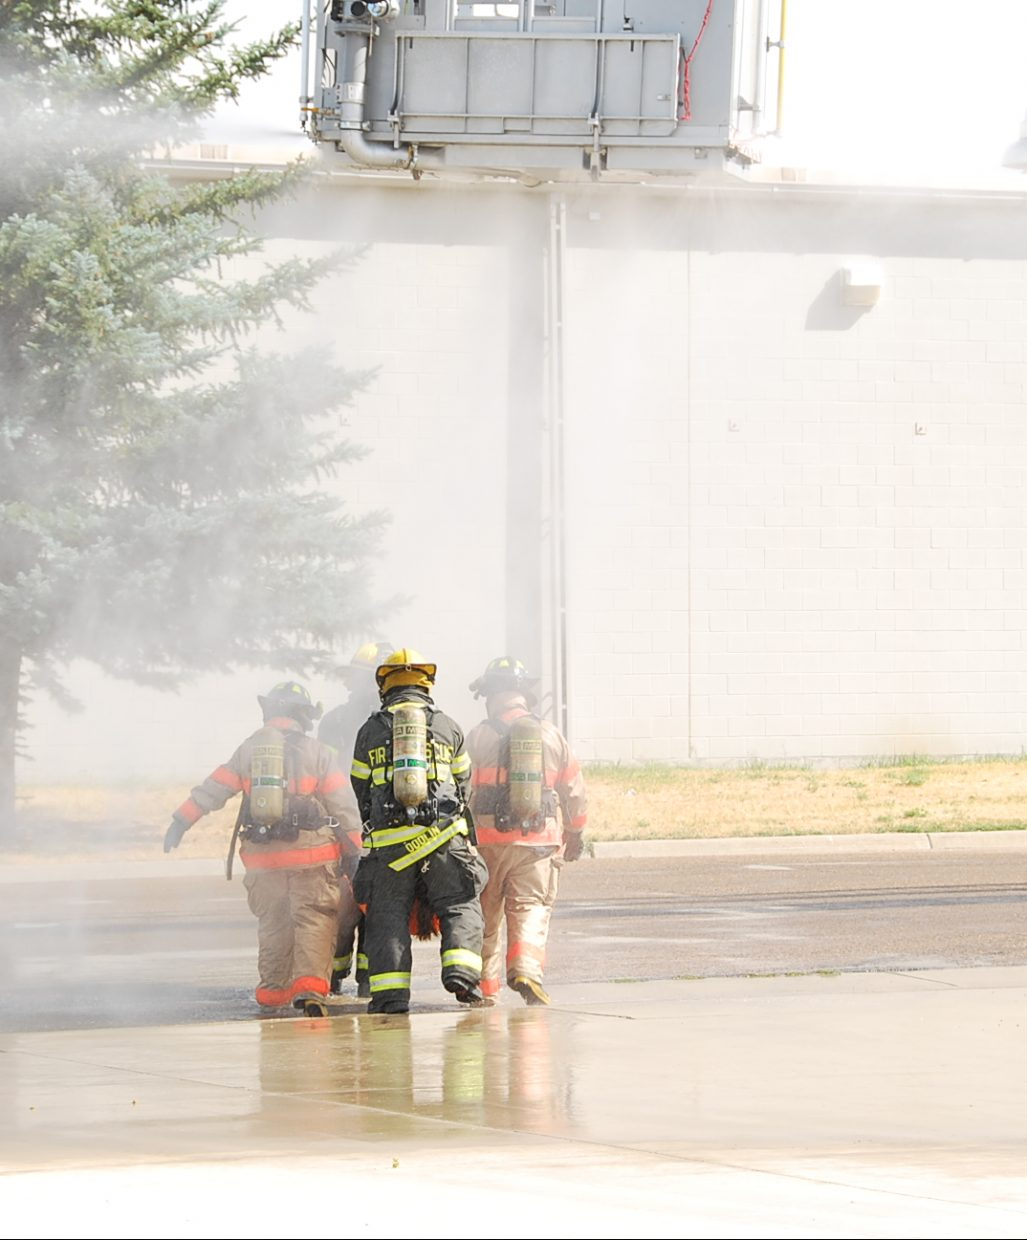 Firefighters walk through the decontamination shower with a victim as part of the training.